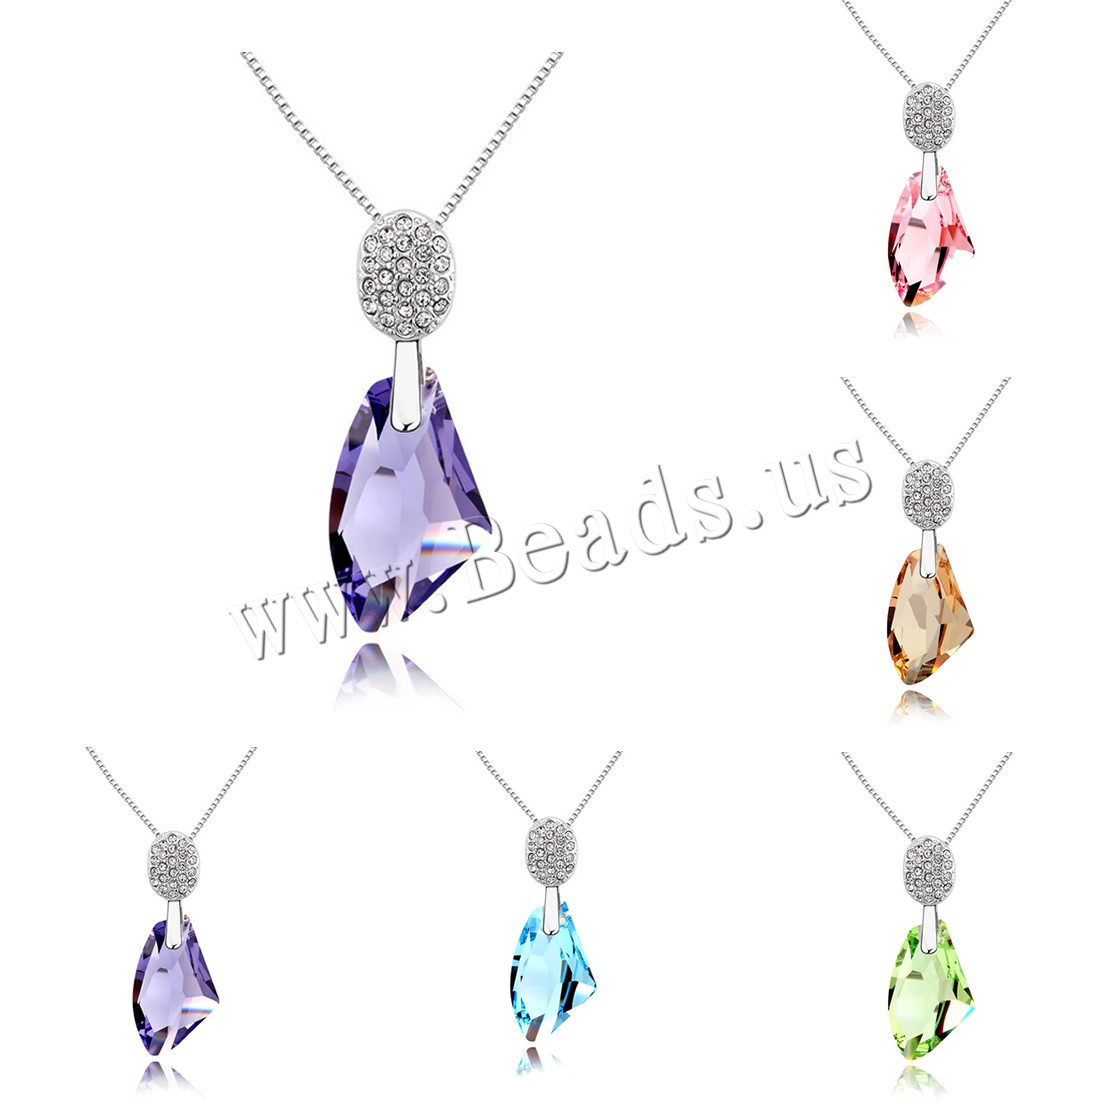 Buy CRYSTALLIZED™ Element Crystal Necklace Brass CRYSTALLIZED™ 5cm extender chain platinum plated box chain & woman & faceted colors choice nickel lead & cadmium free 17x27mm Sold Per Approx 15.5 Inch Strand